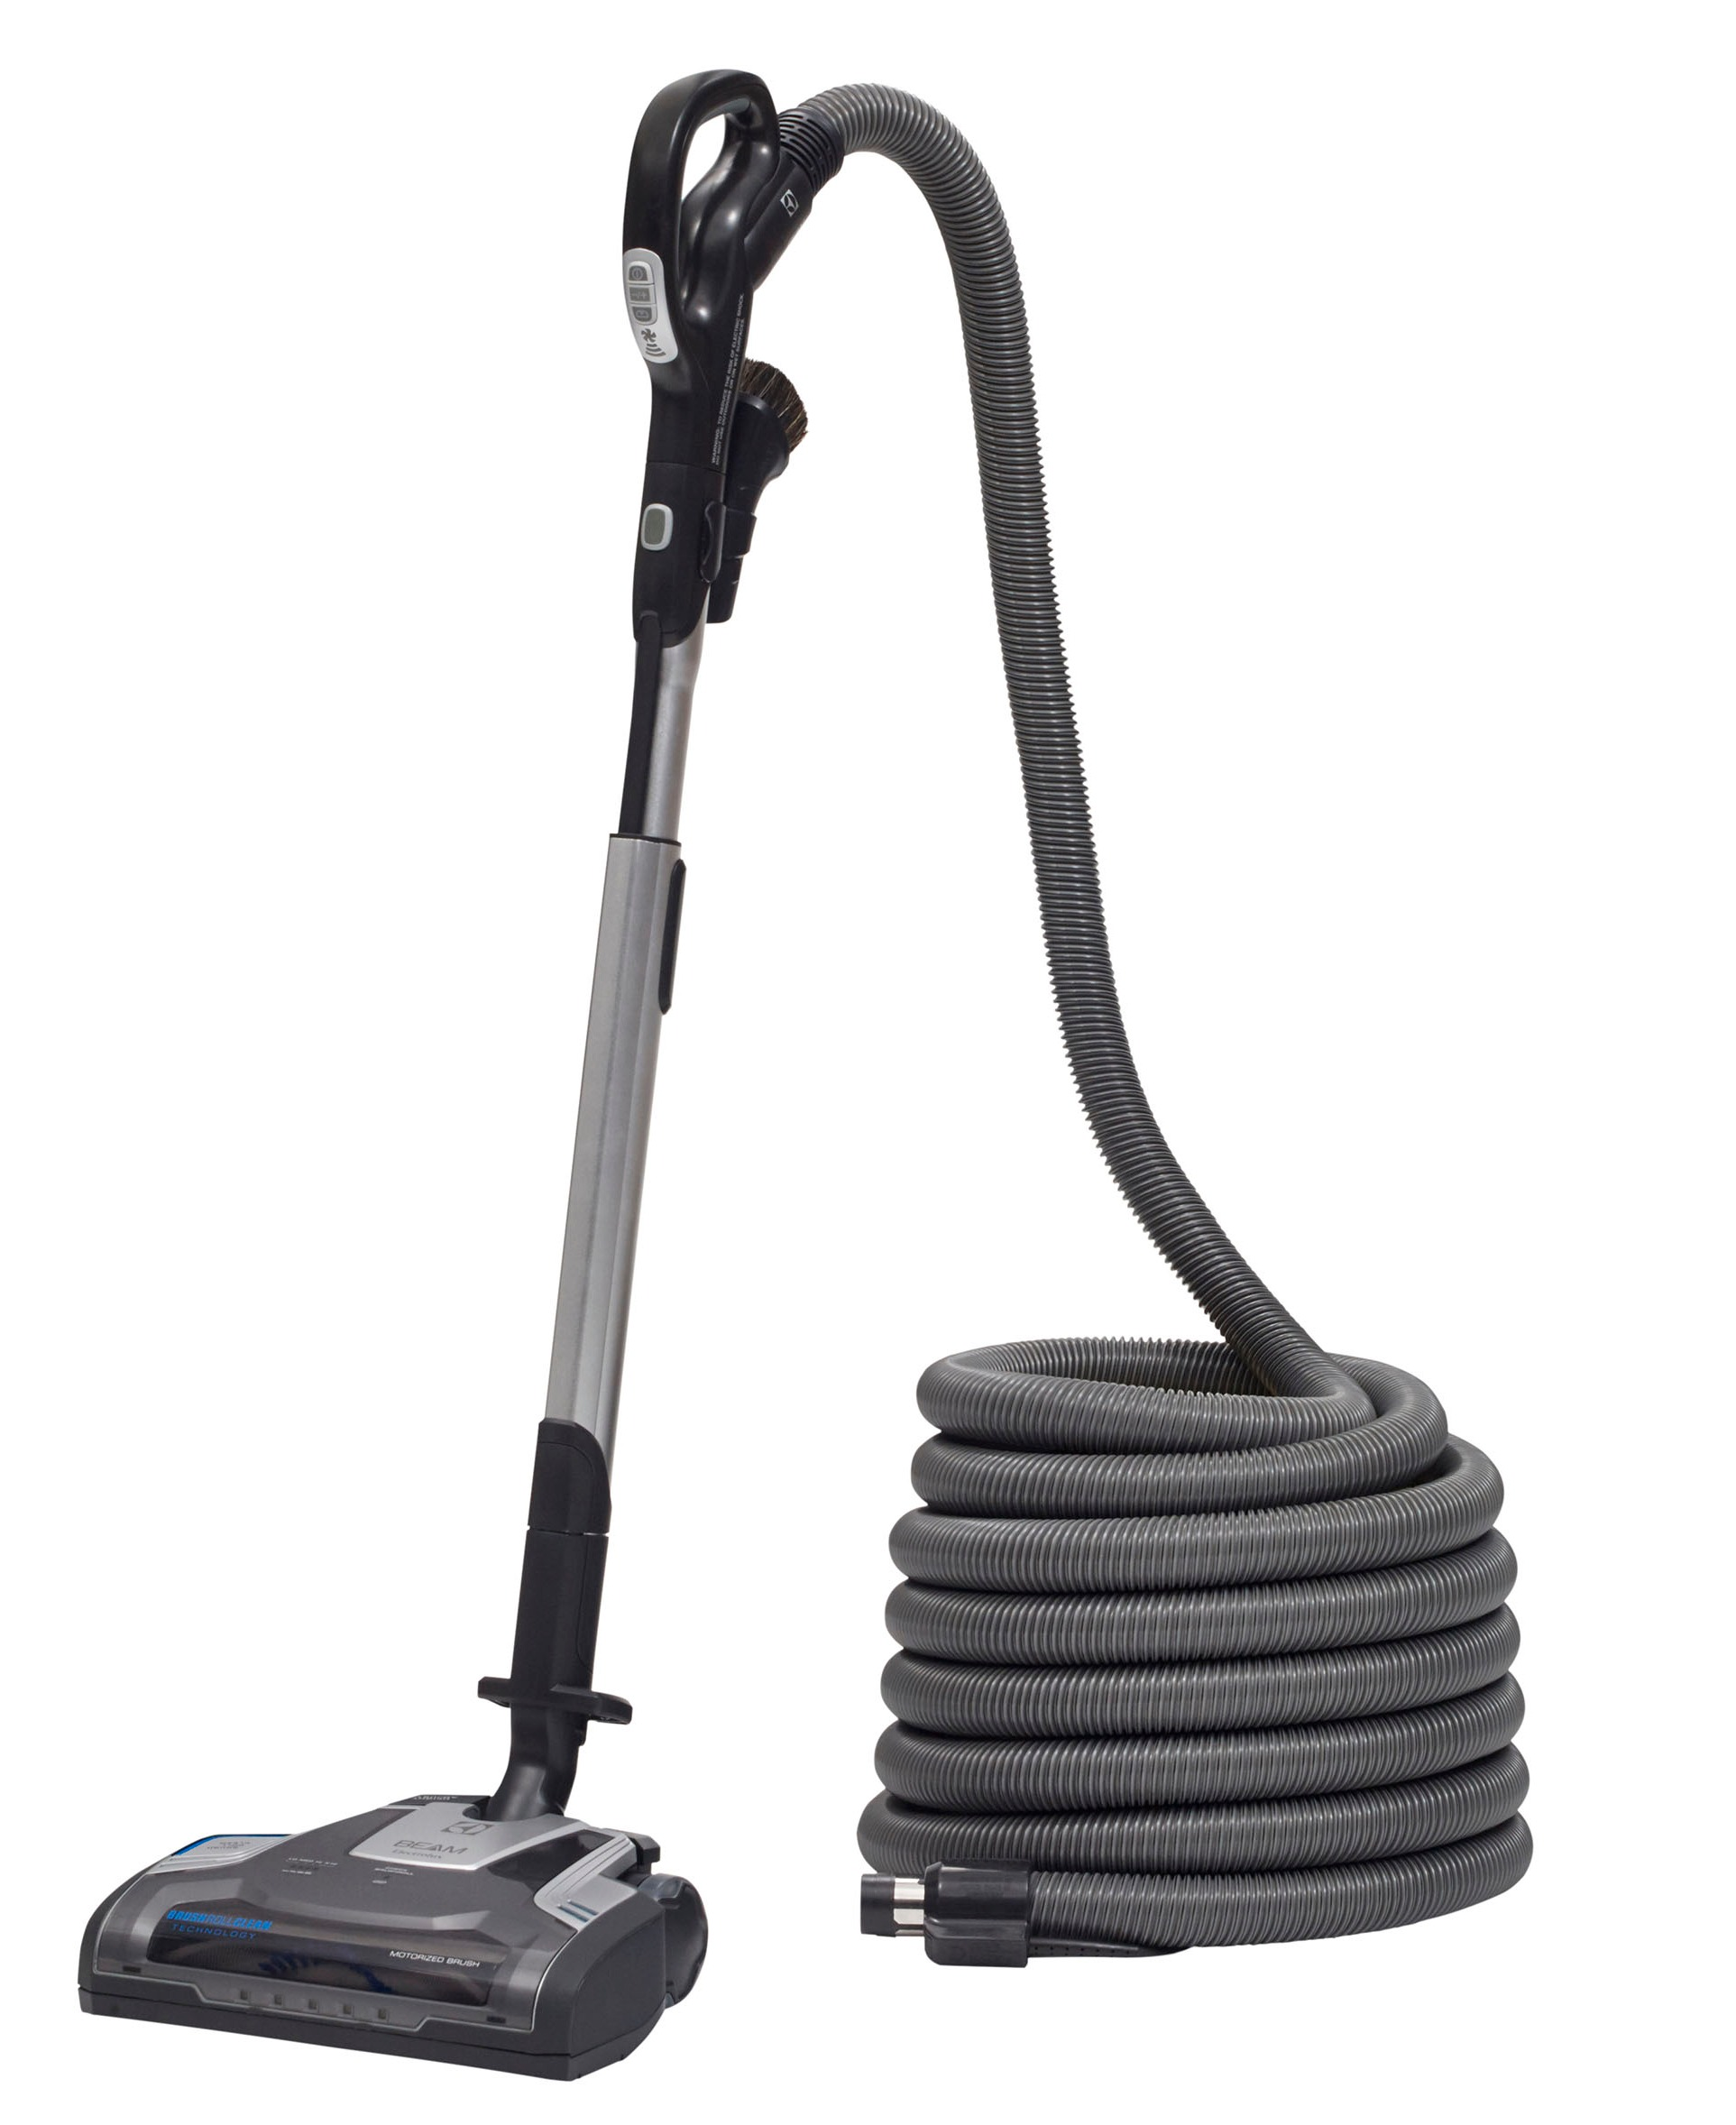 https://www.speedyvacuum.ca/public/uploads/products_photo/5819fa7f8db42.jpg